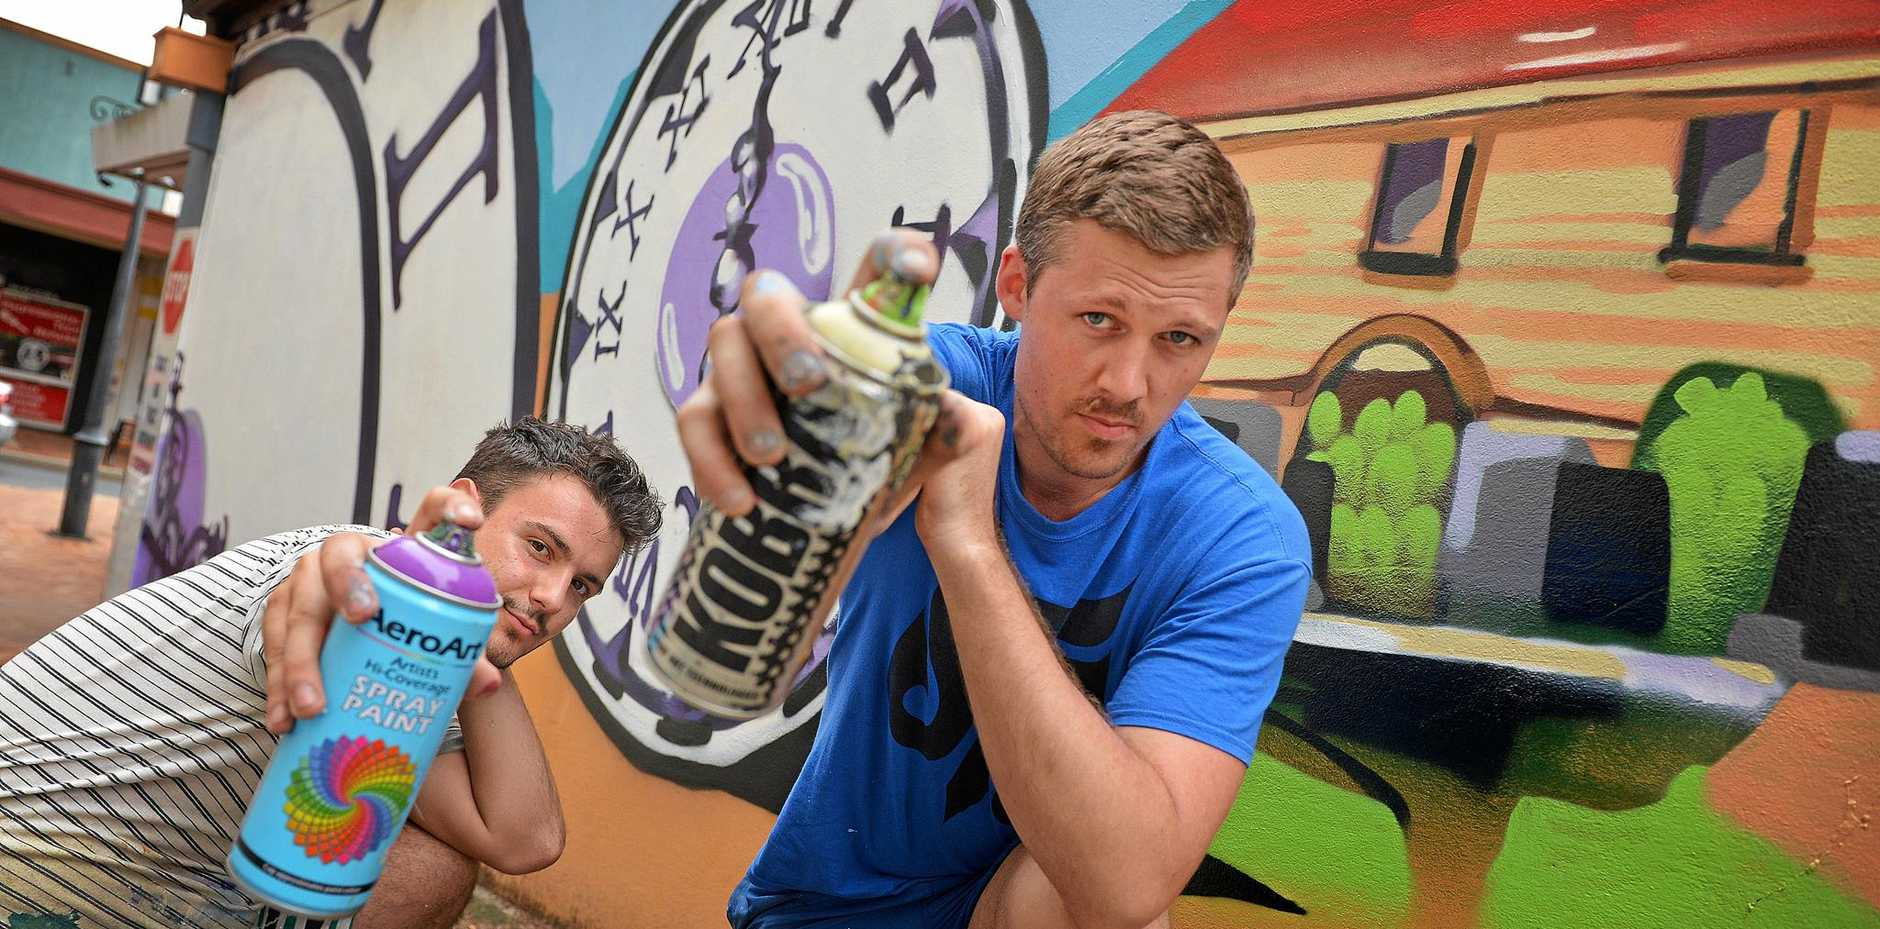 FROM BLAND TO GRAND: James Ellis and Jesse Jensen are brining the artistic flair of street art to Gympie..